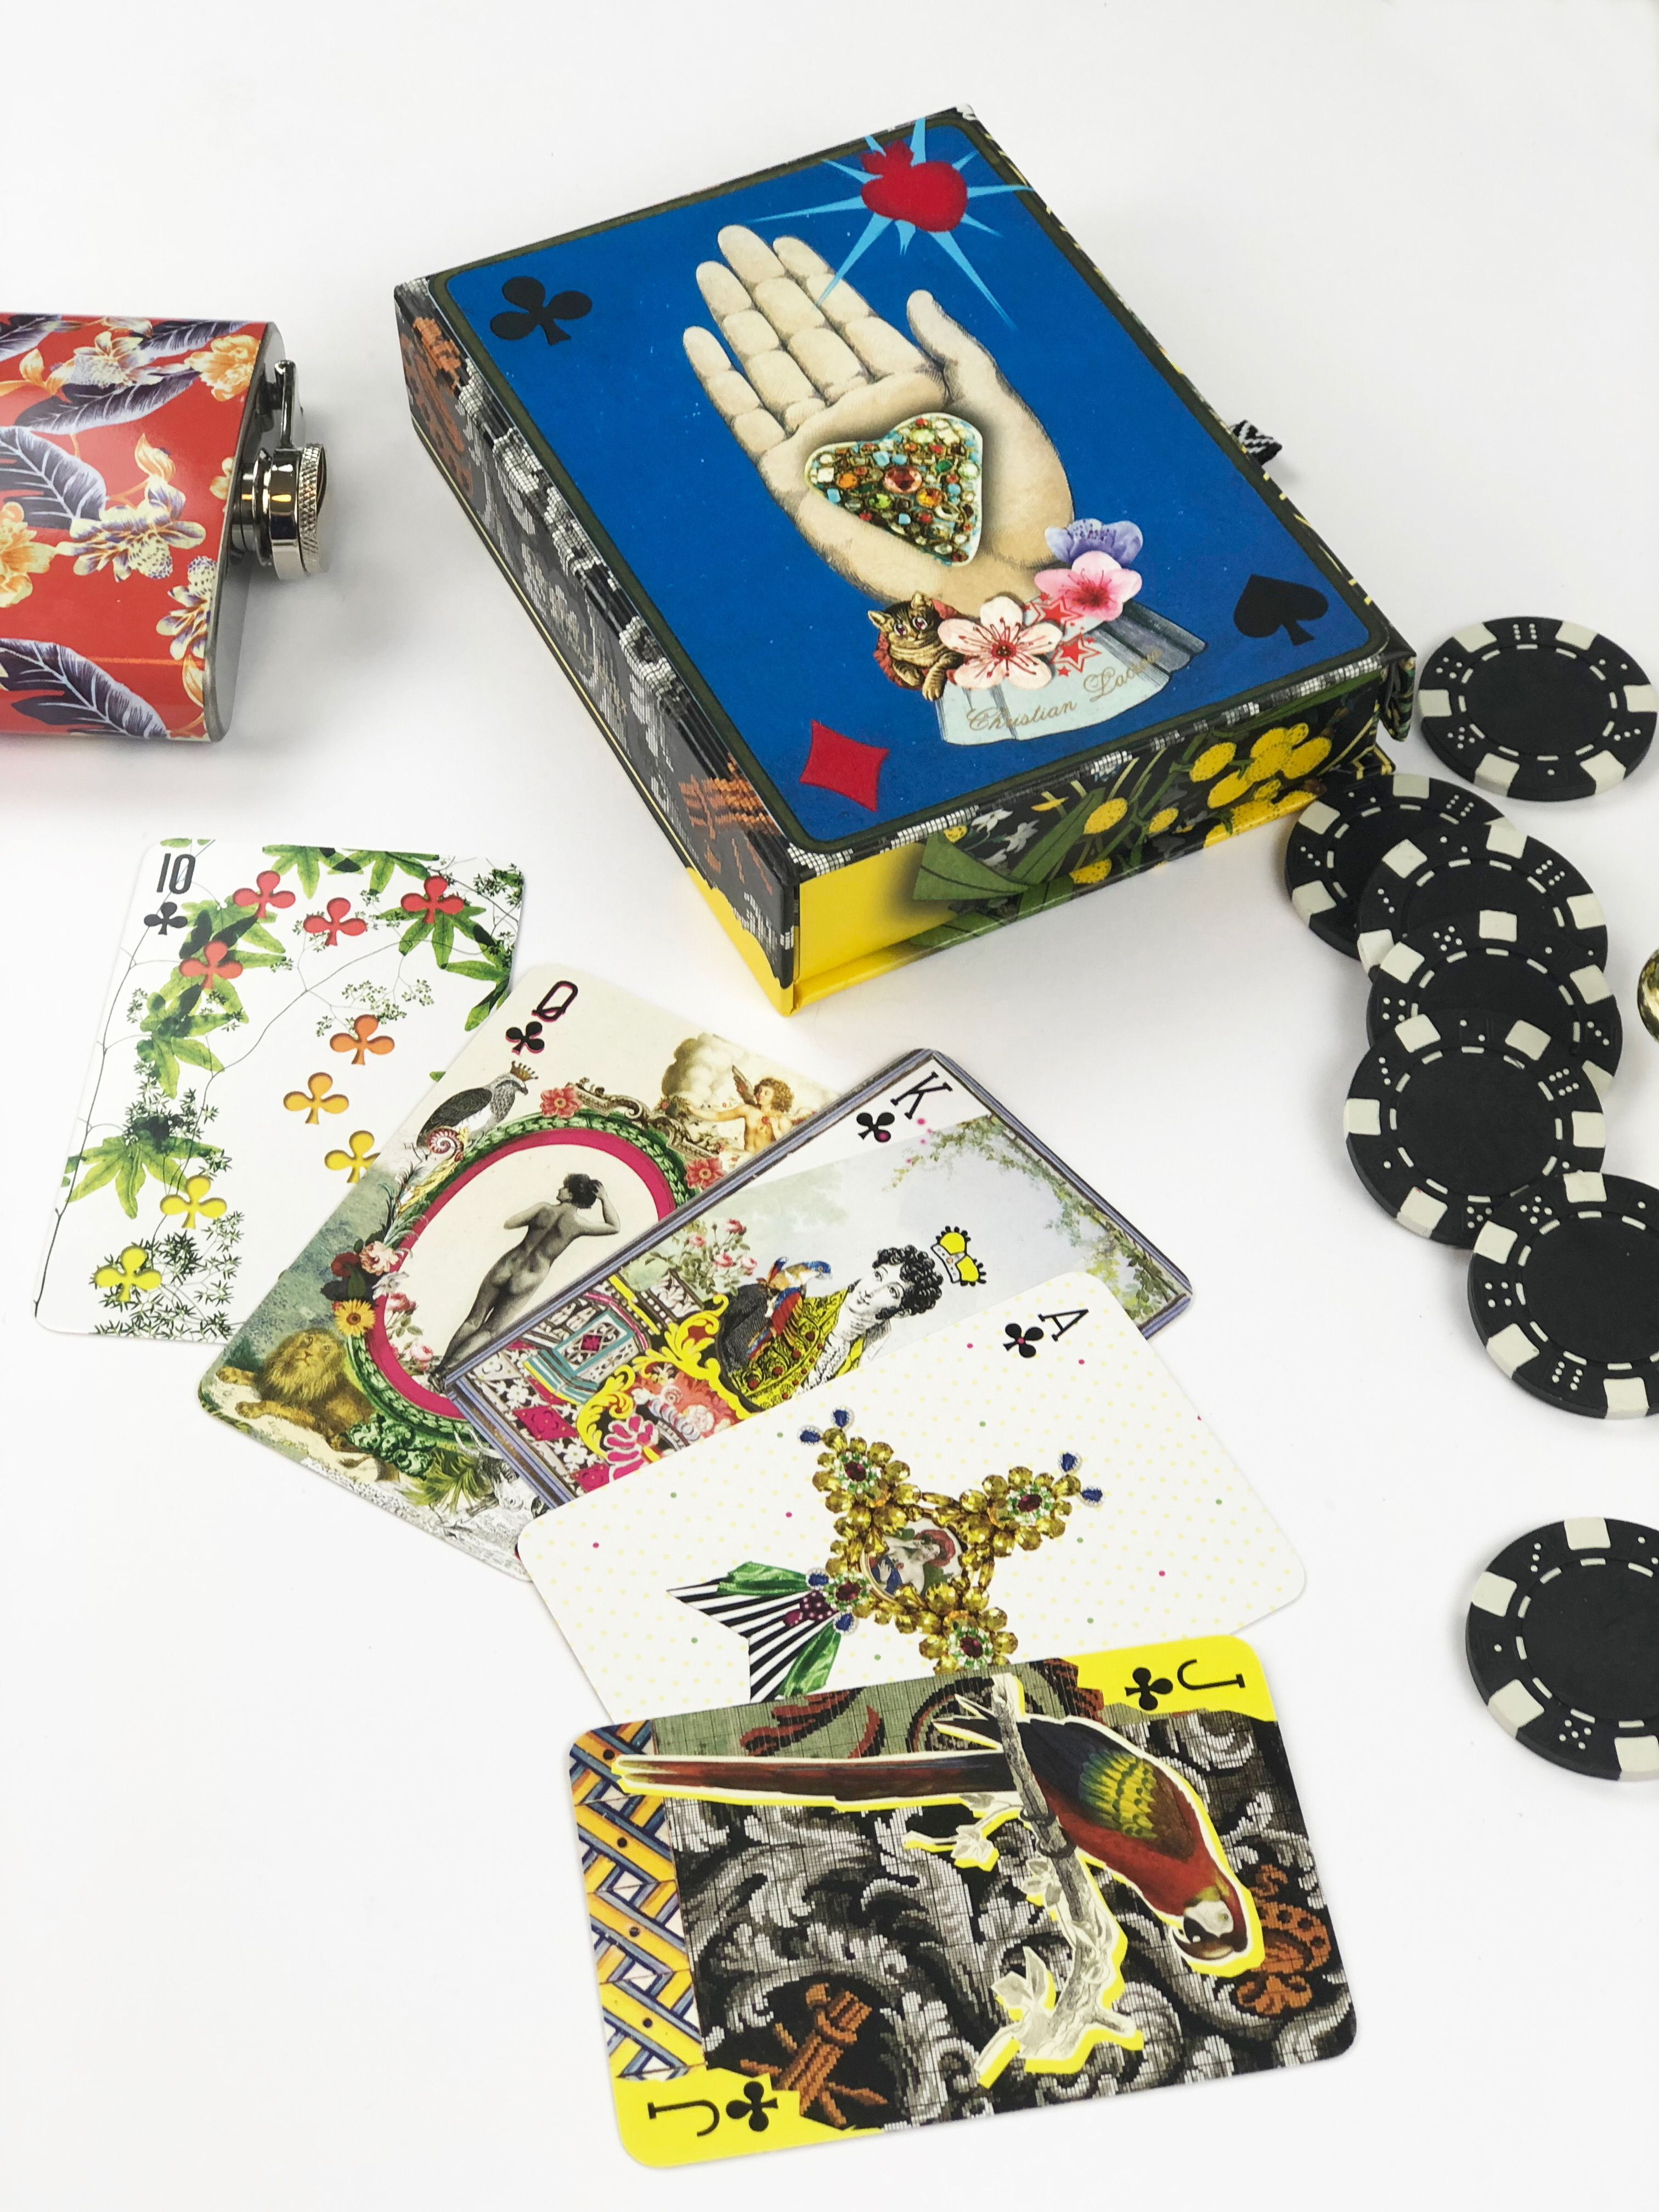 Christian lacroix playing cards by galison available